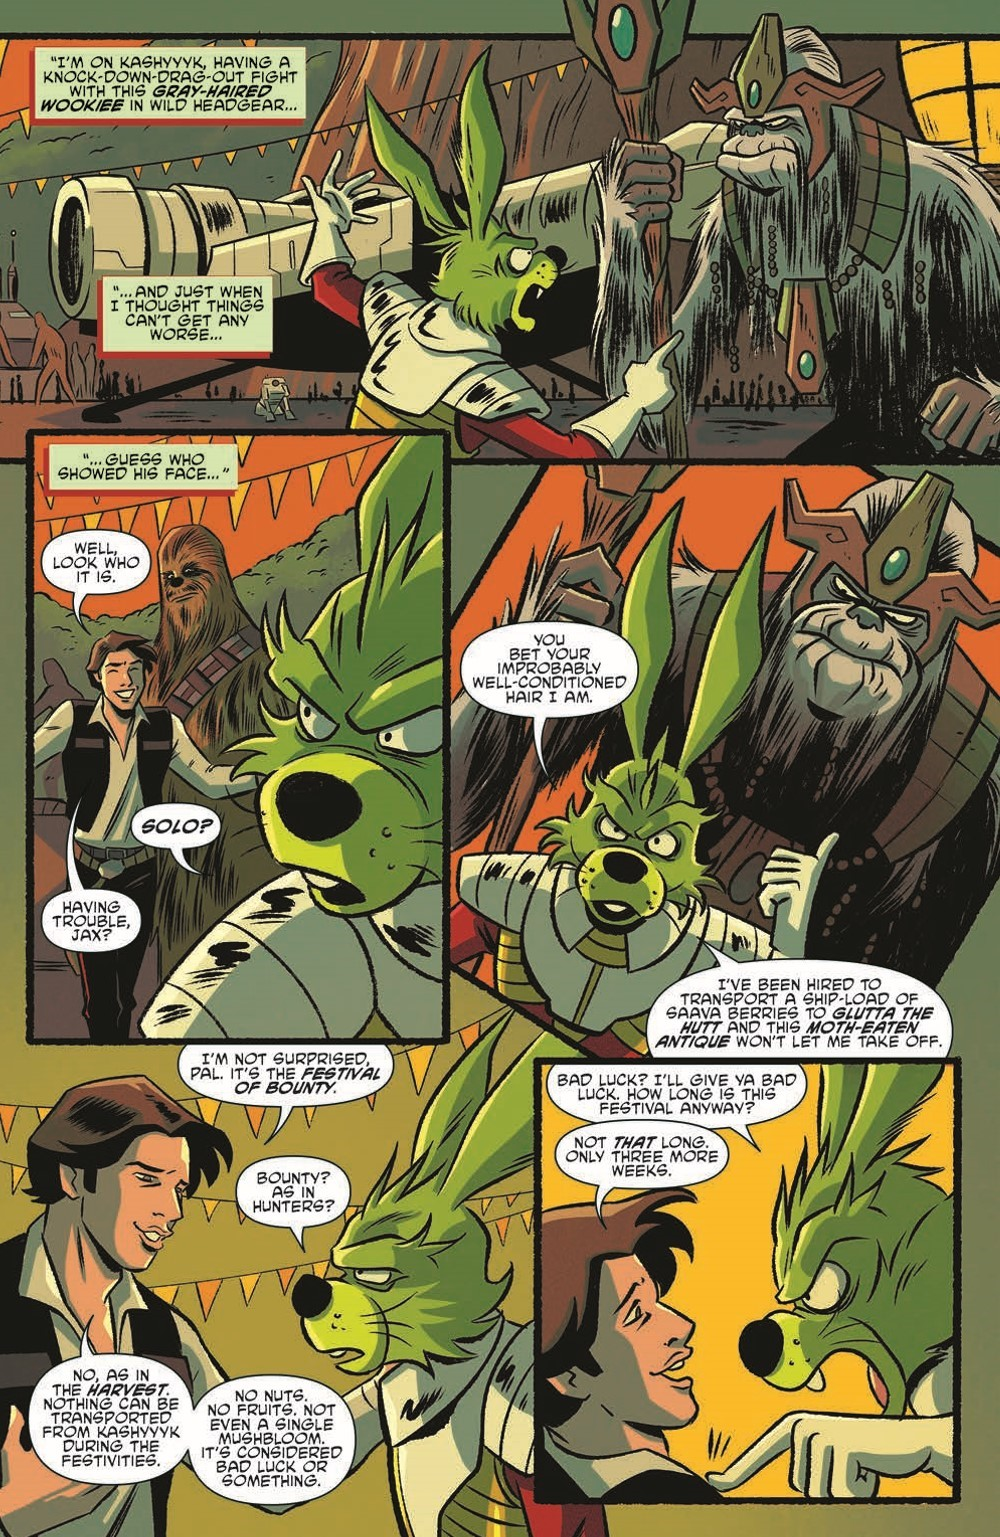 SW_GoVC02_pr-7 ComicList Previews: STAR WARS ADVENTURES GHOST OF VADER'S CASTLE #2 (OF 5)